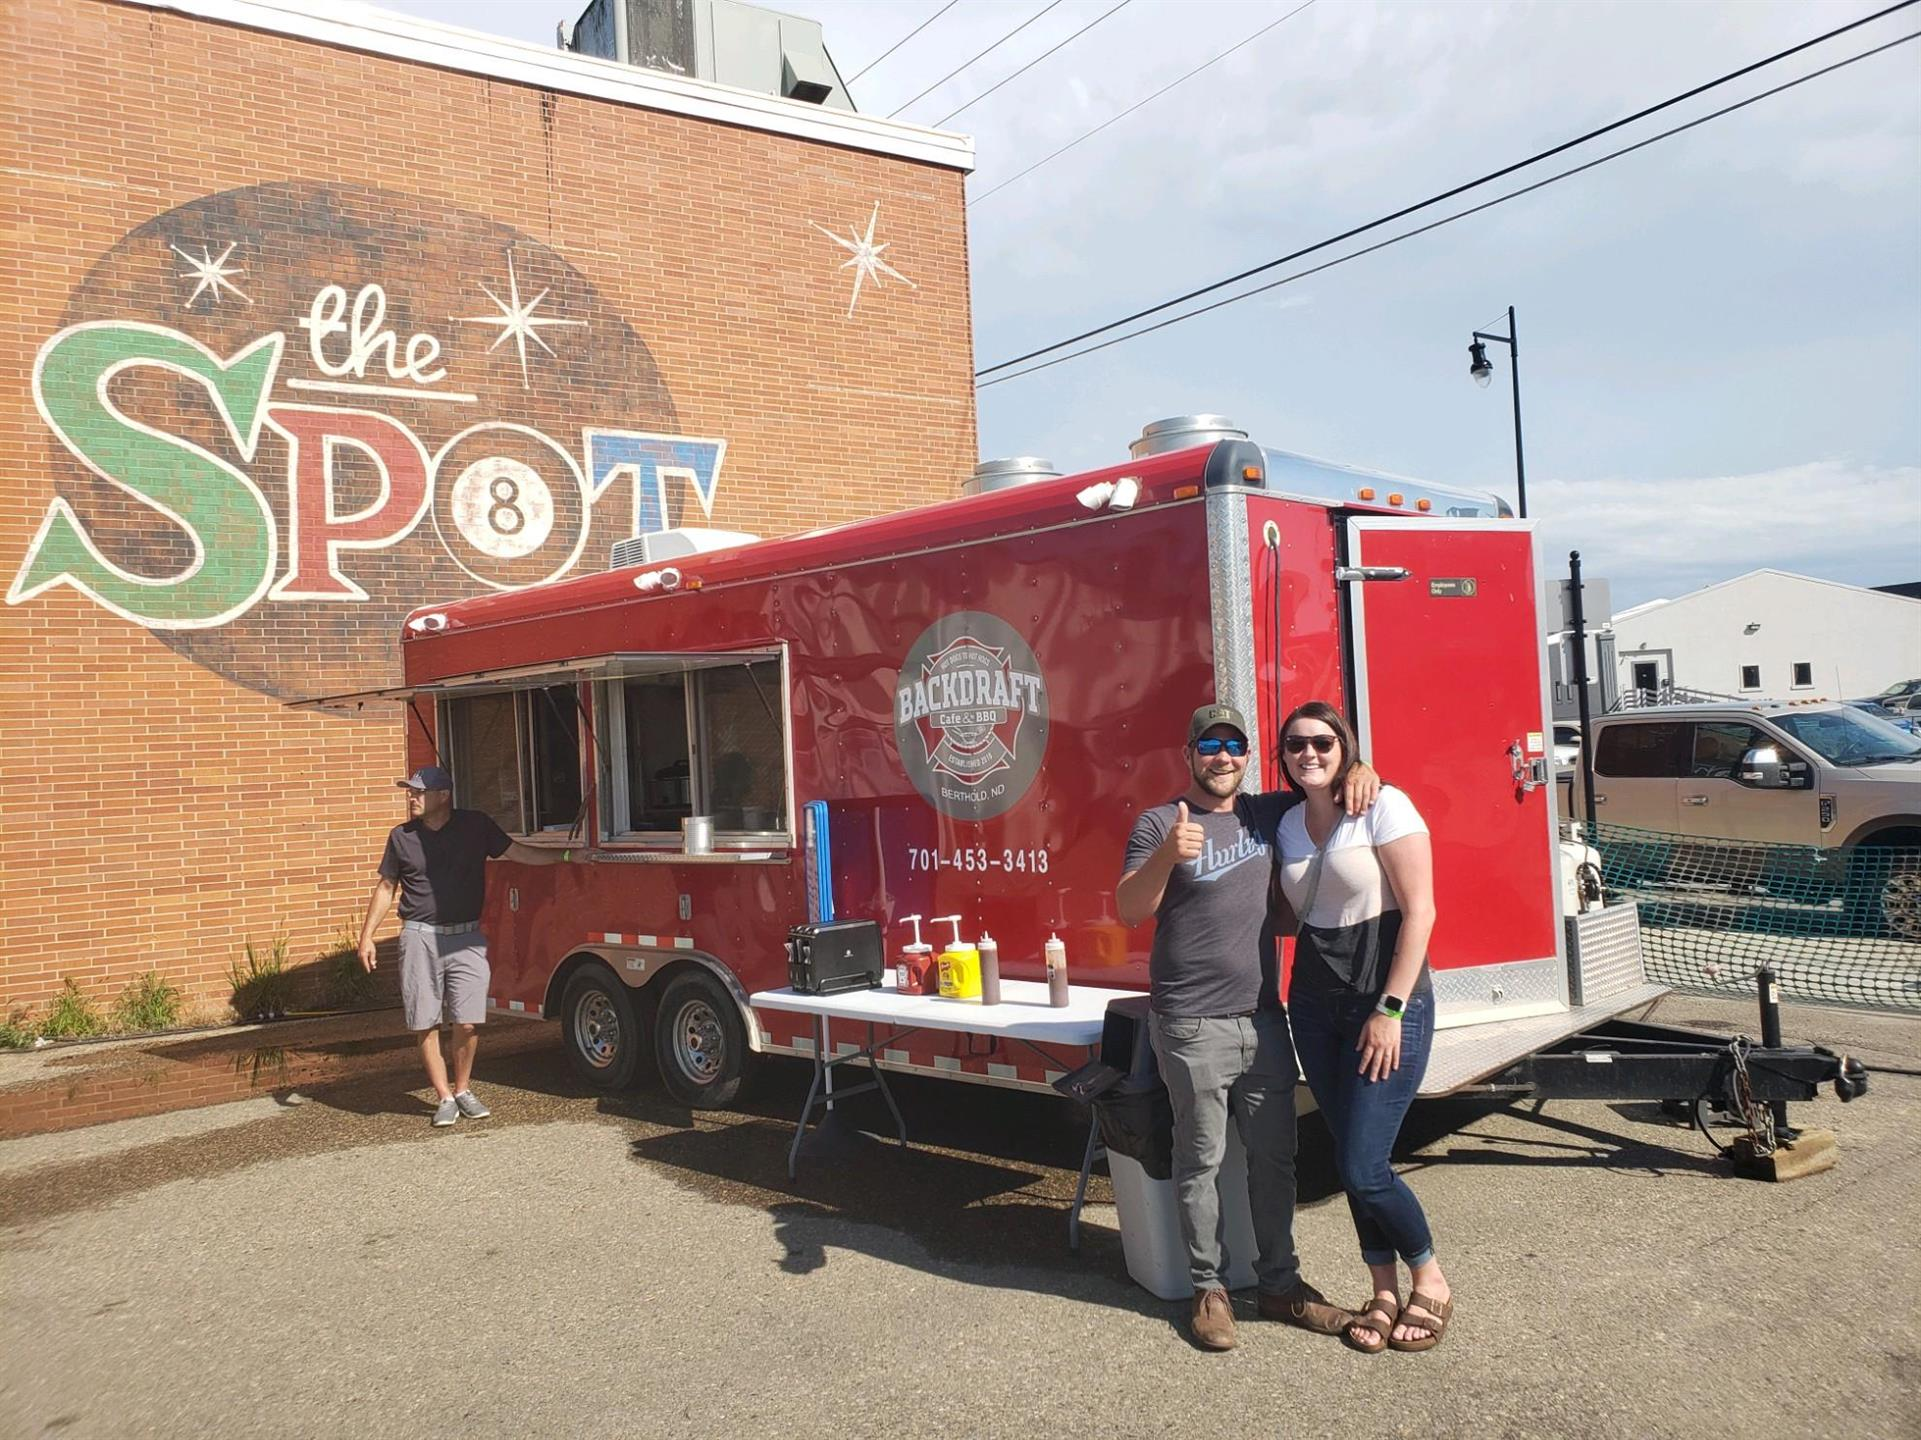 couple posing in front of Food Truck